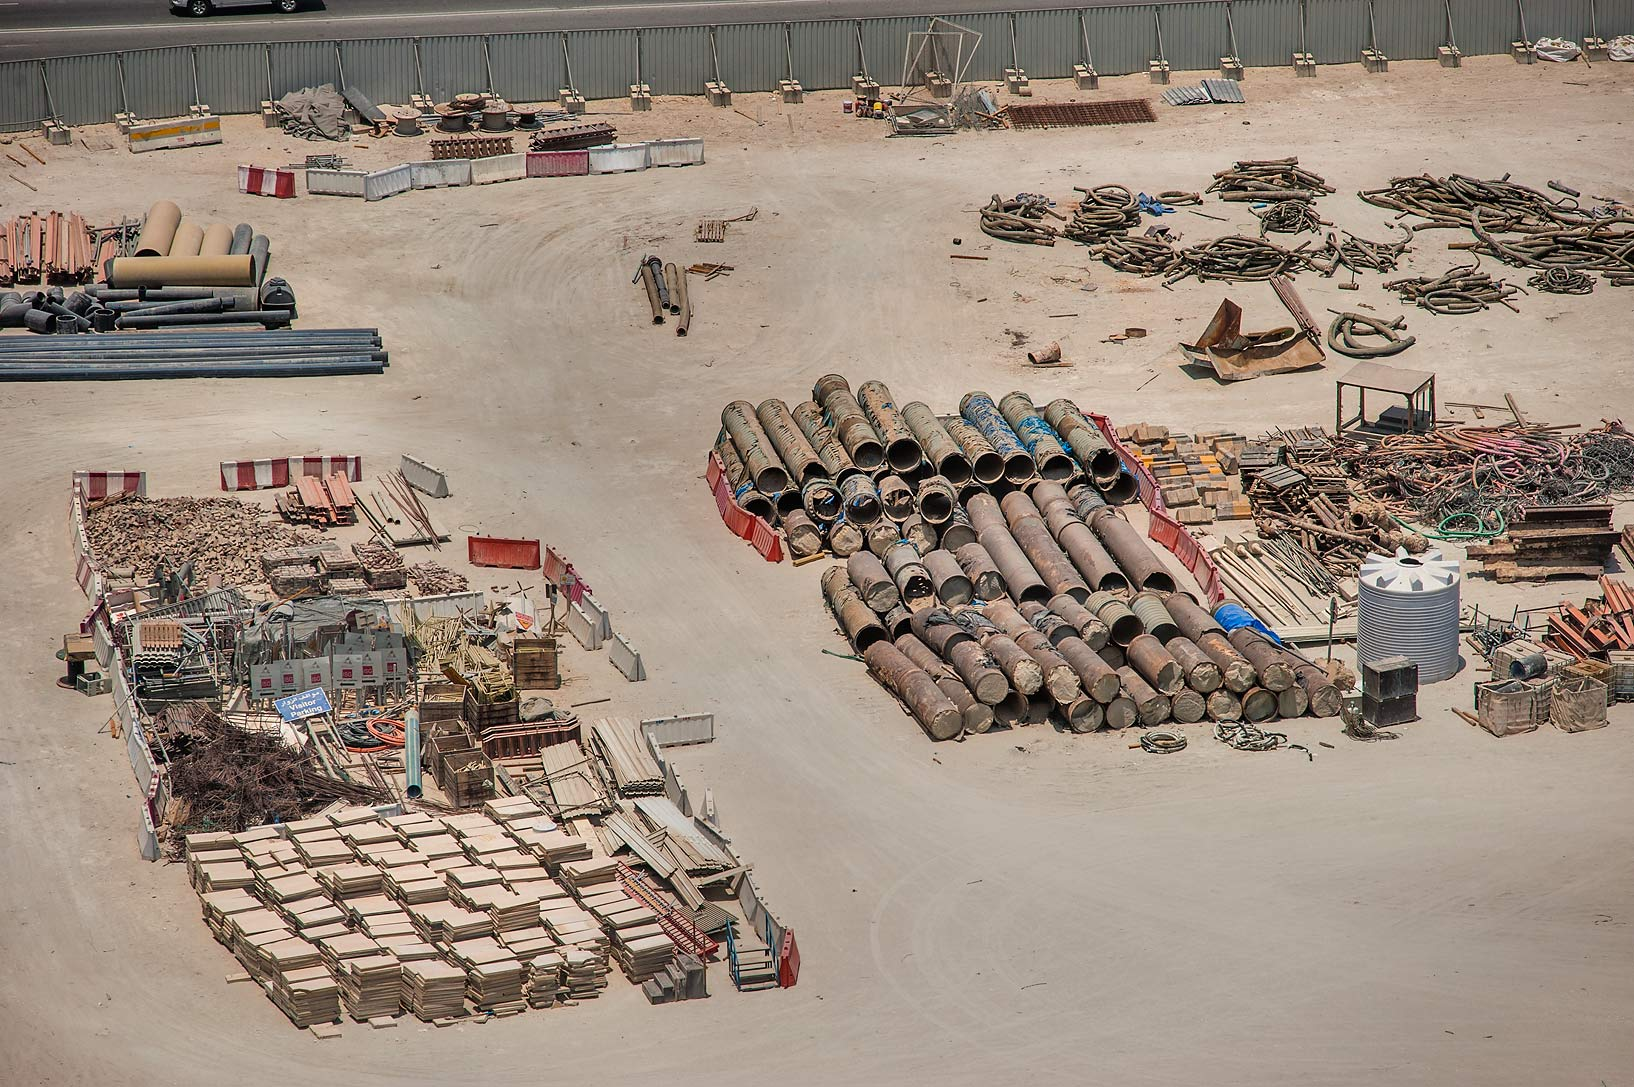 Construction junkyard from a window of Room 1-2244 of Ezdan Hotel. Doha, Qatar